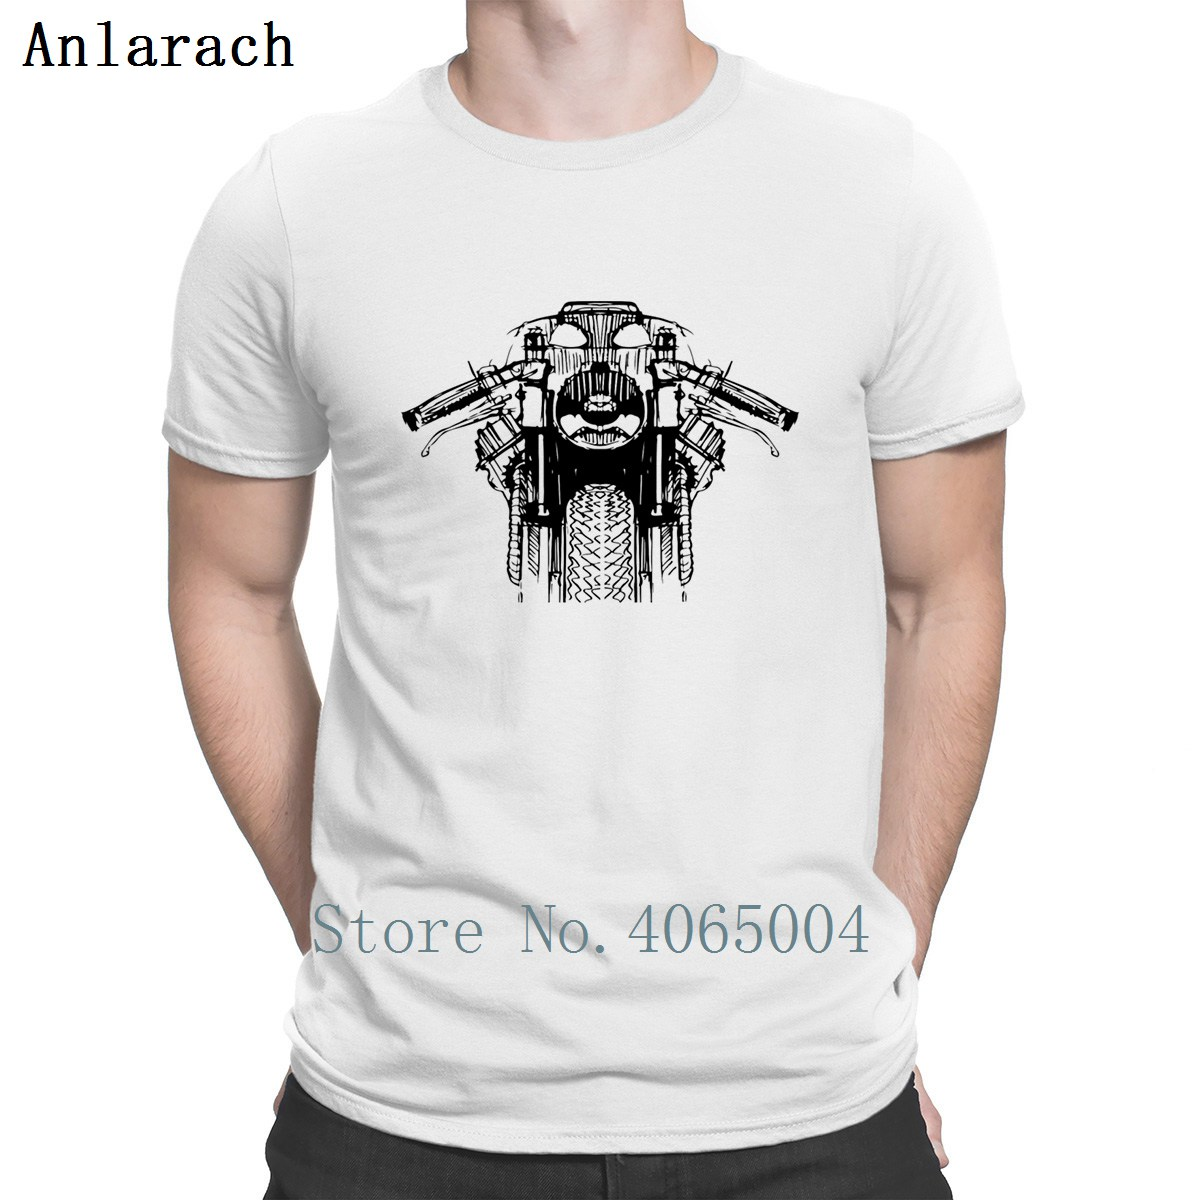 Cafe racer Motorcycle Rider   T     Shirt   Novelty Graphic Authentic Tee   Shirt   Solid Color Summer S-XXXL Design   Shirt